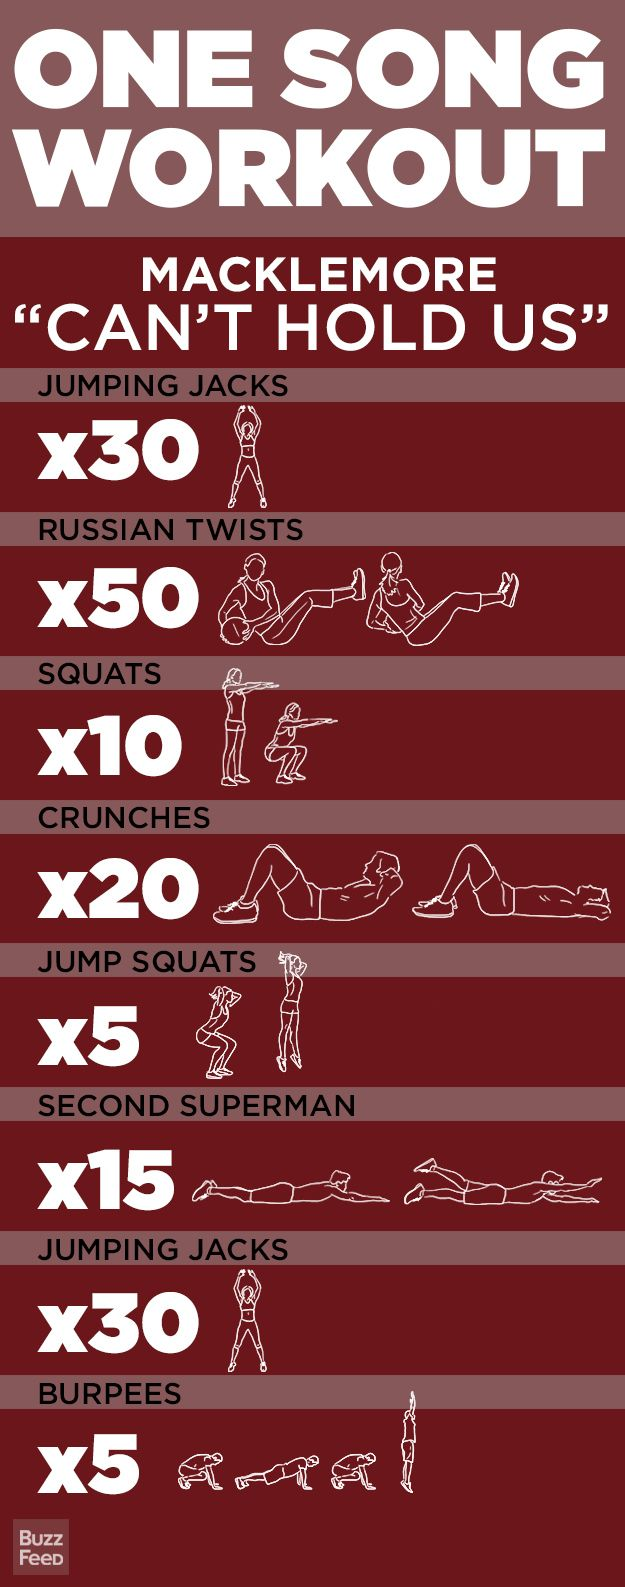 5 One-Song Workouts.